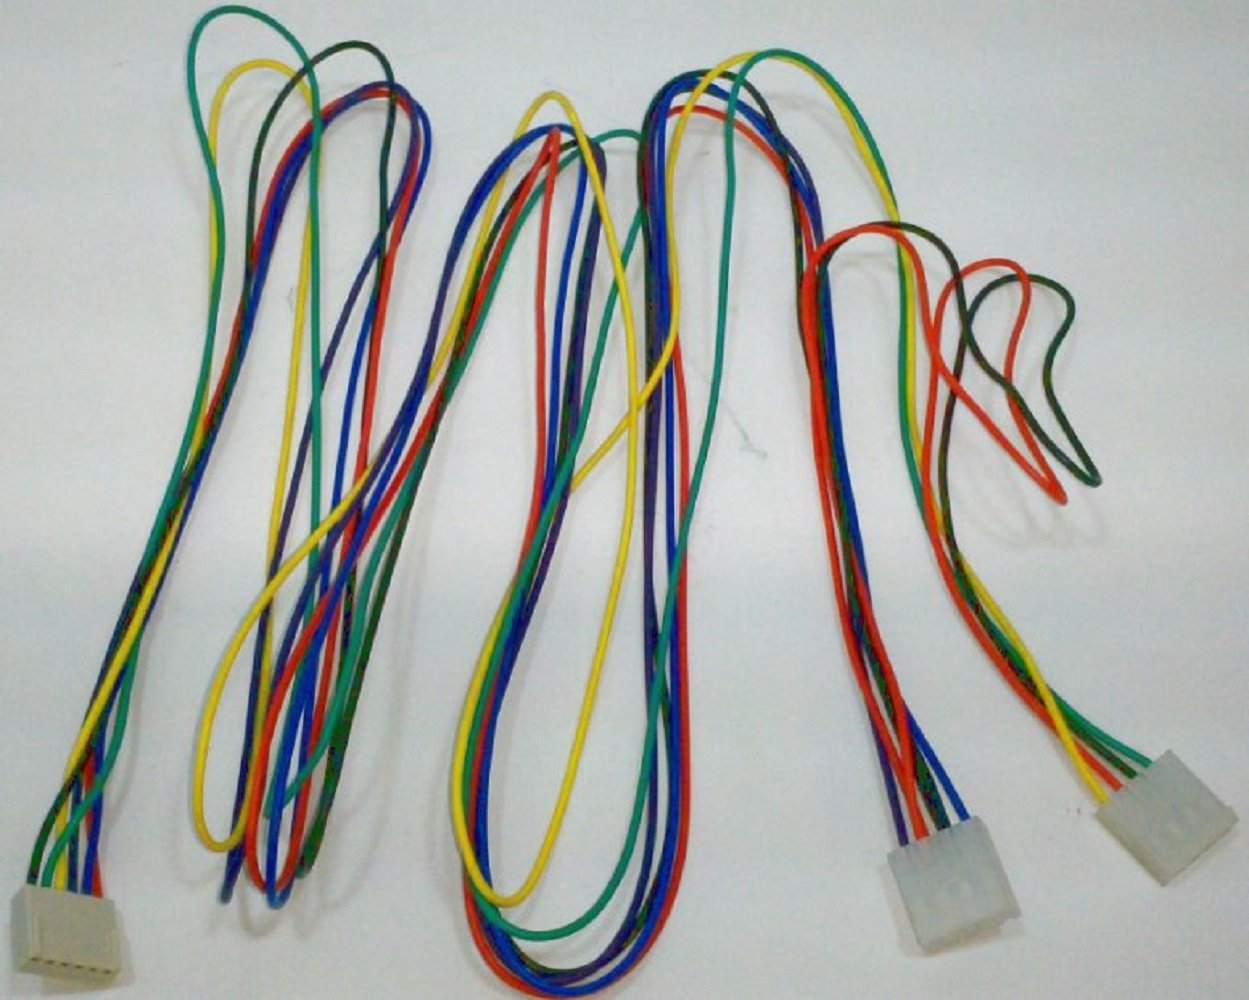 "Amazon.com: Jamma Track Ball Replacement Wiring Harness for 3"" Trackball  60-in-1 Setup: Toys & Games"